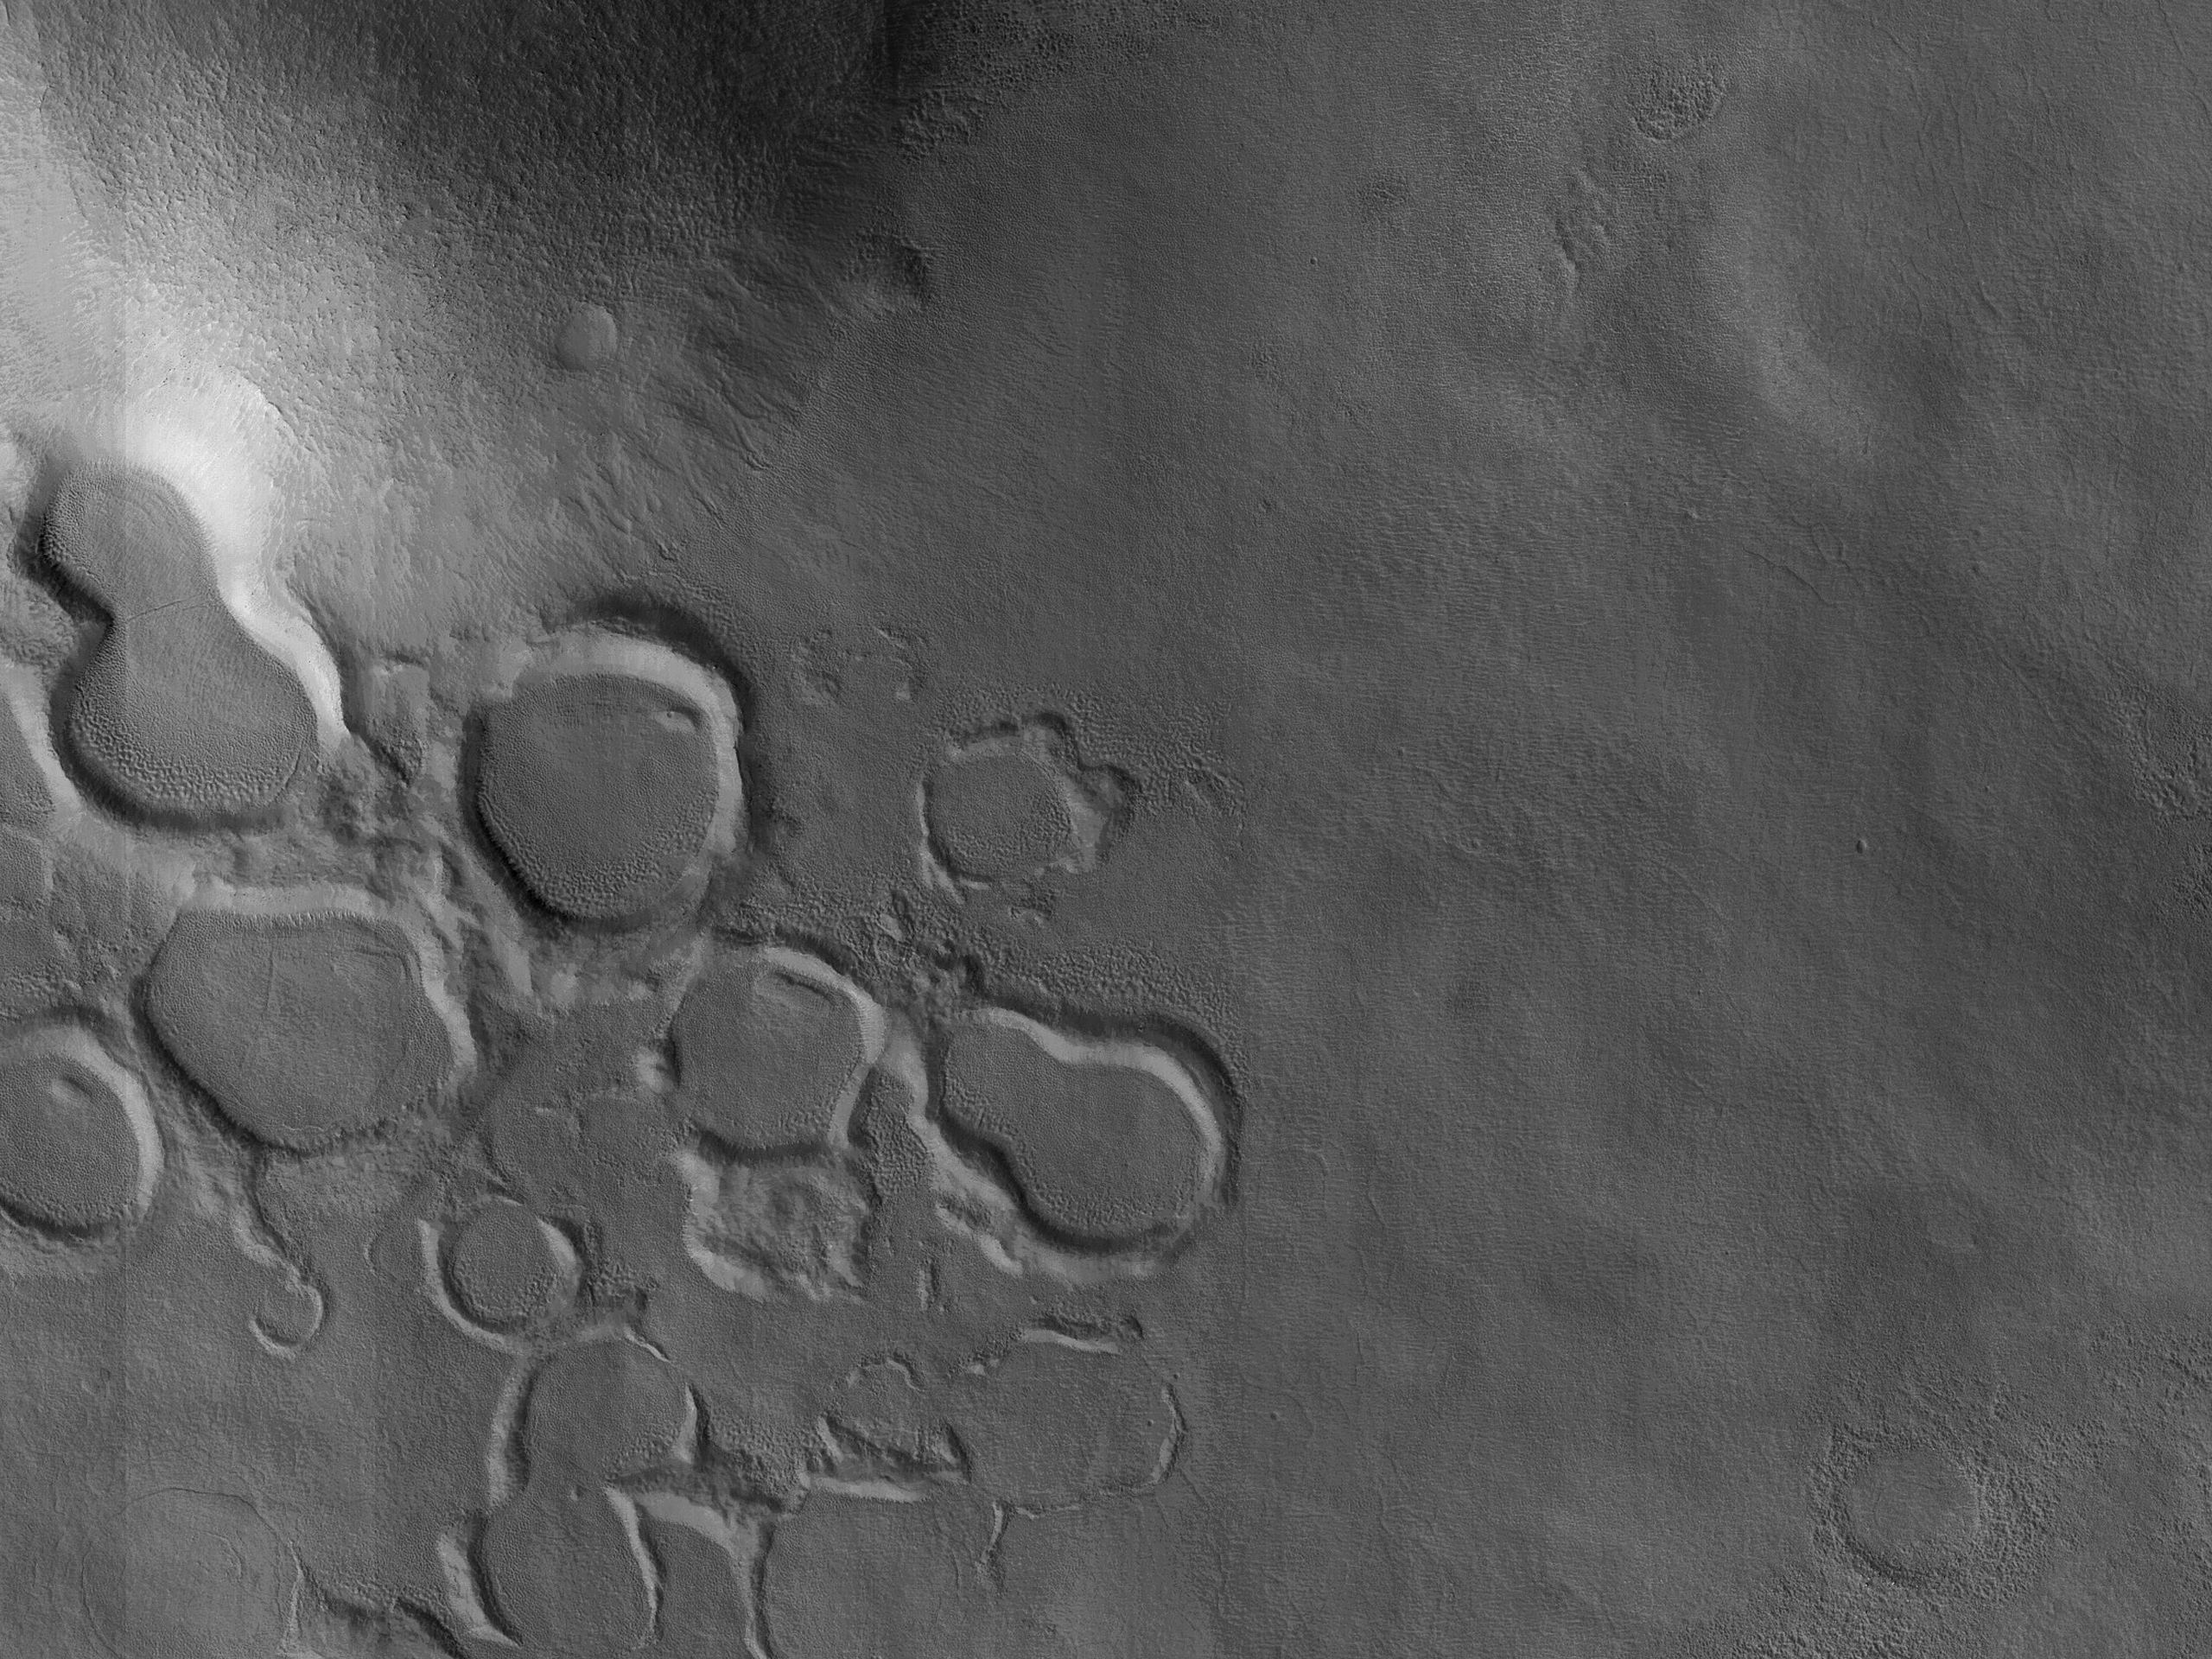 Remembrance of Craters Past